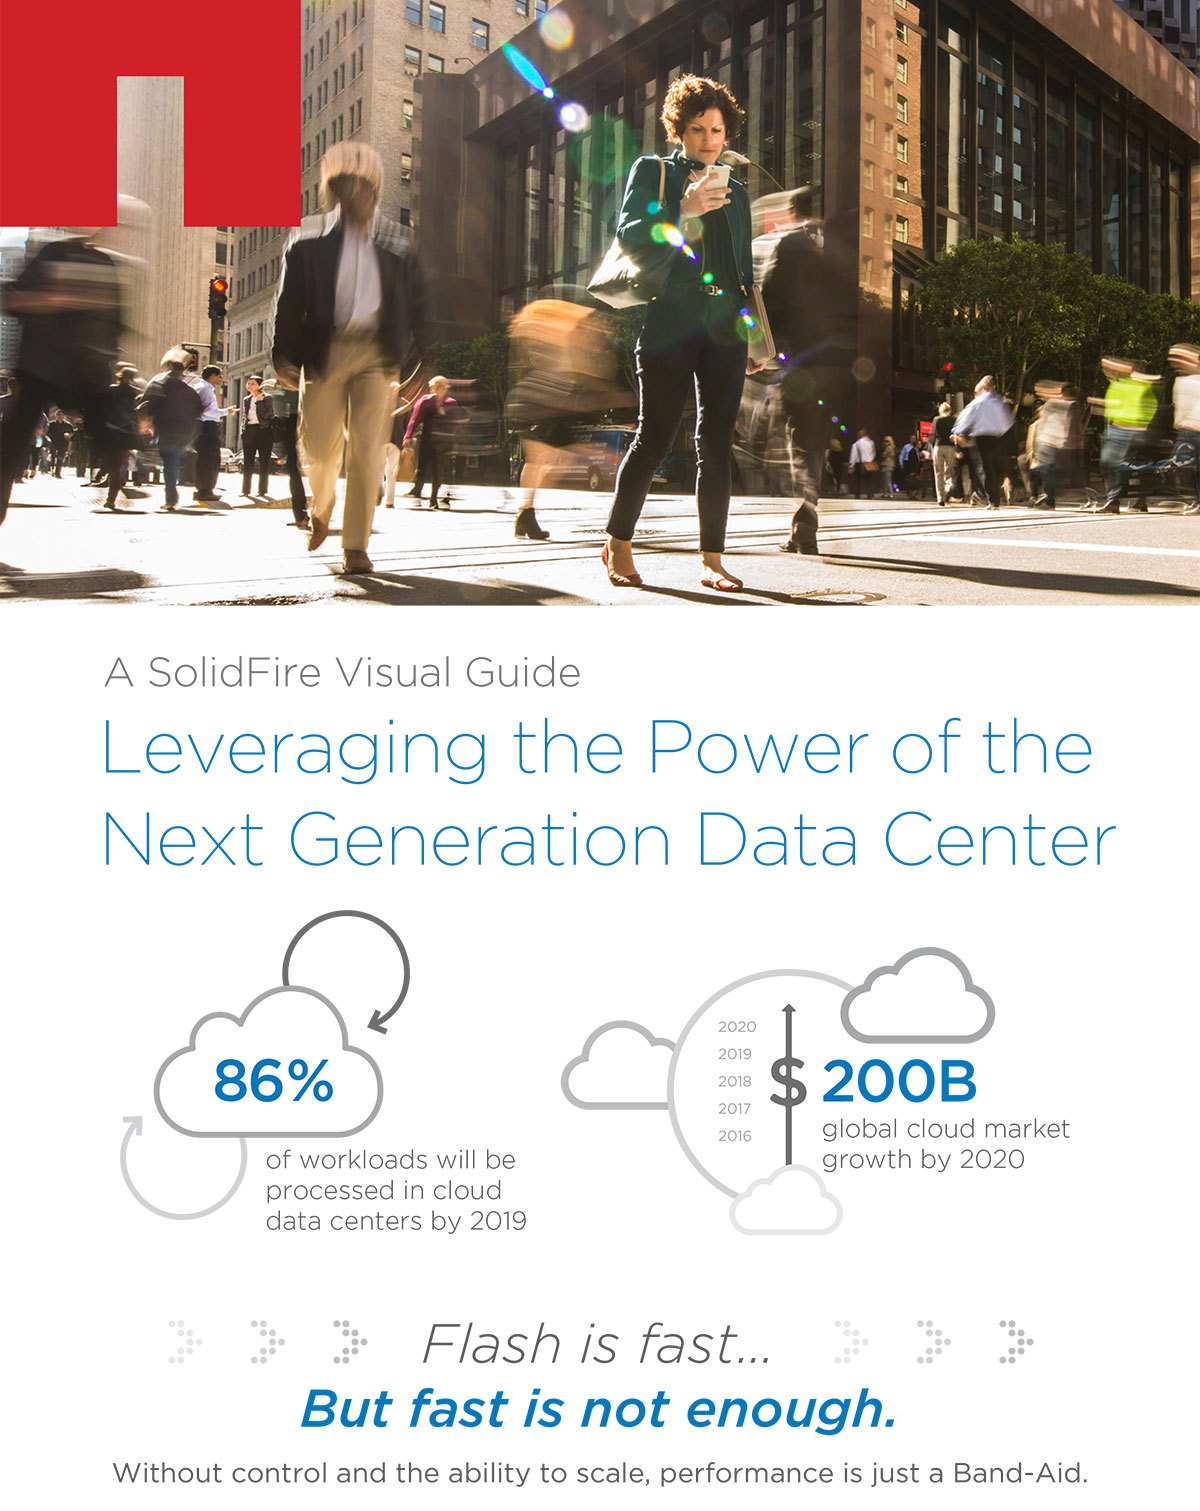 Leveraging the Power of Next Generation Data Center